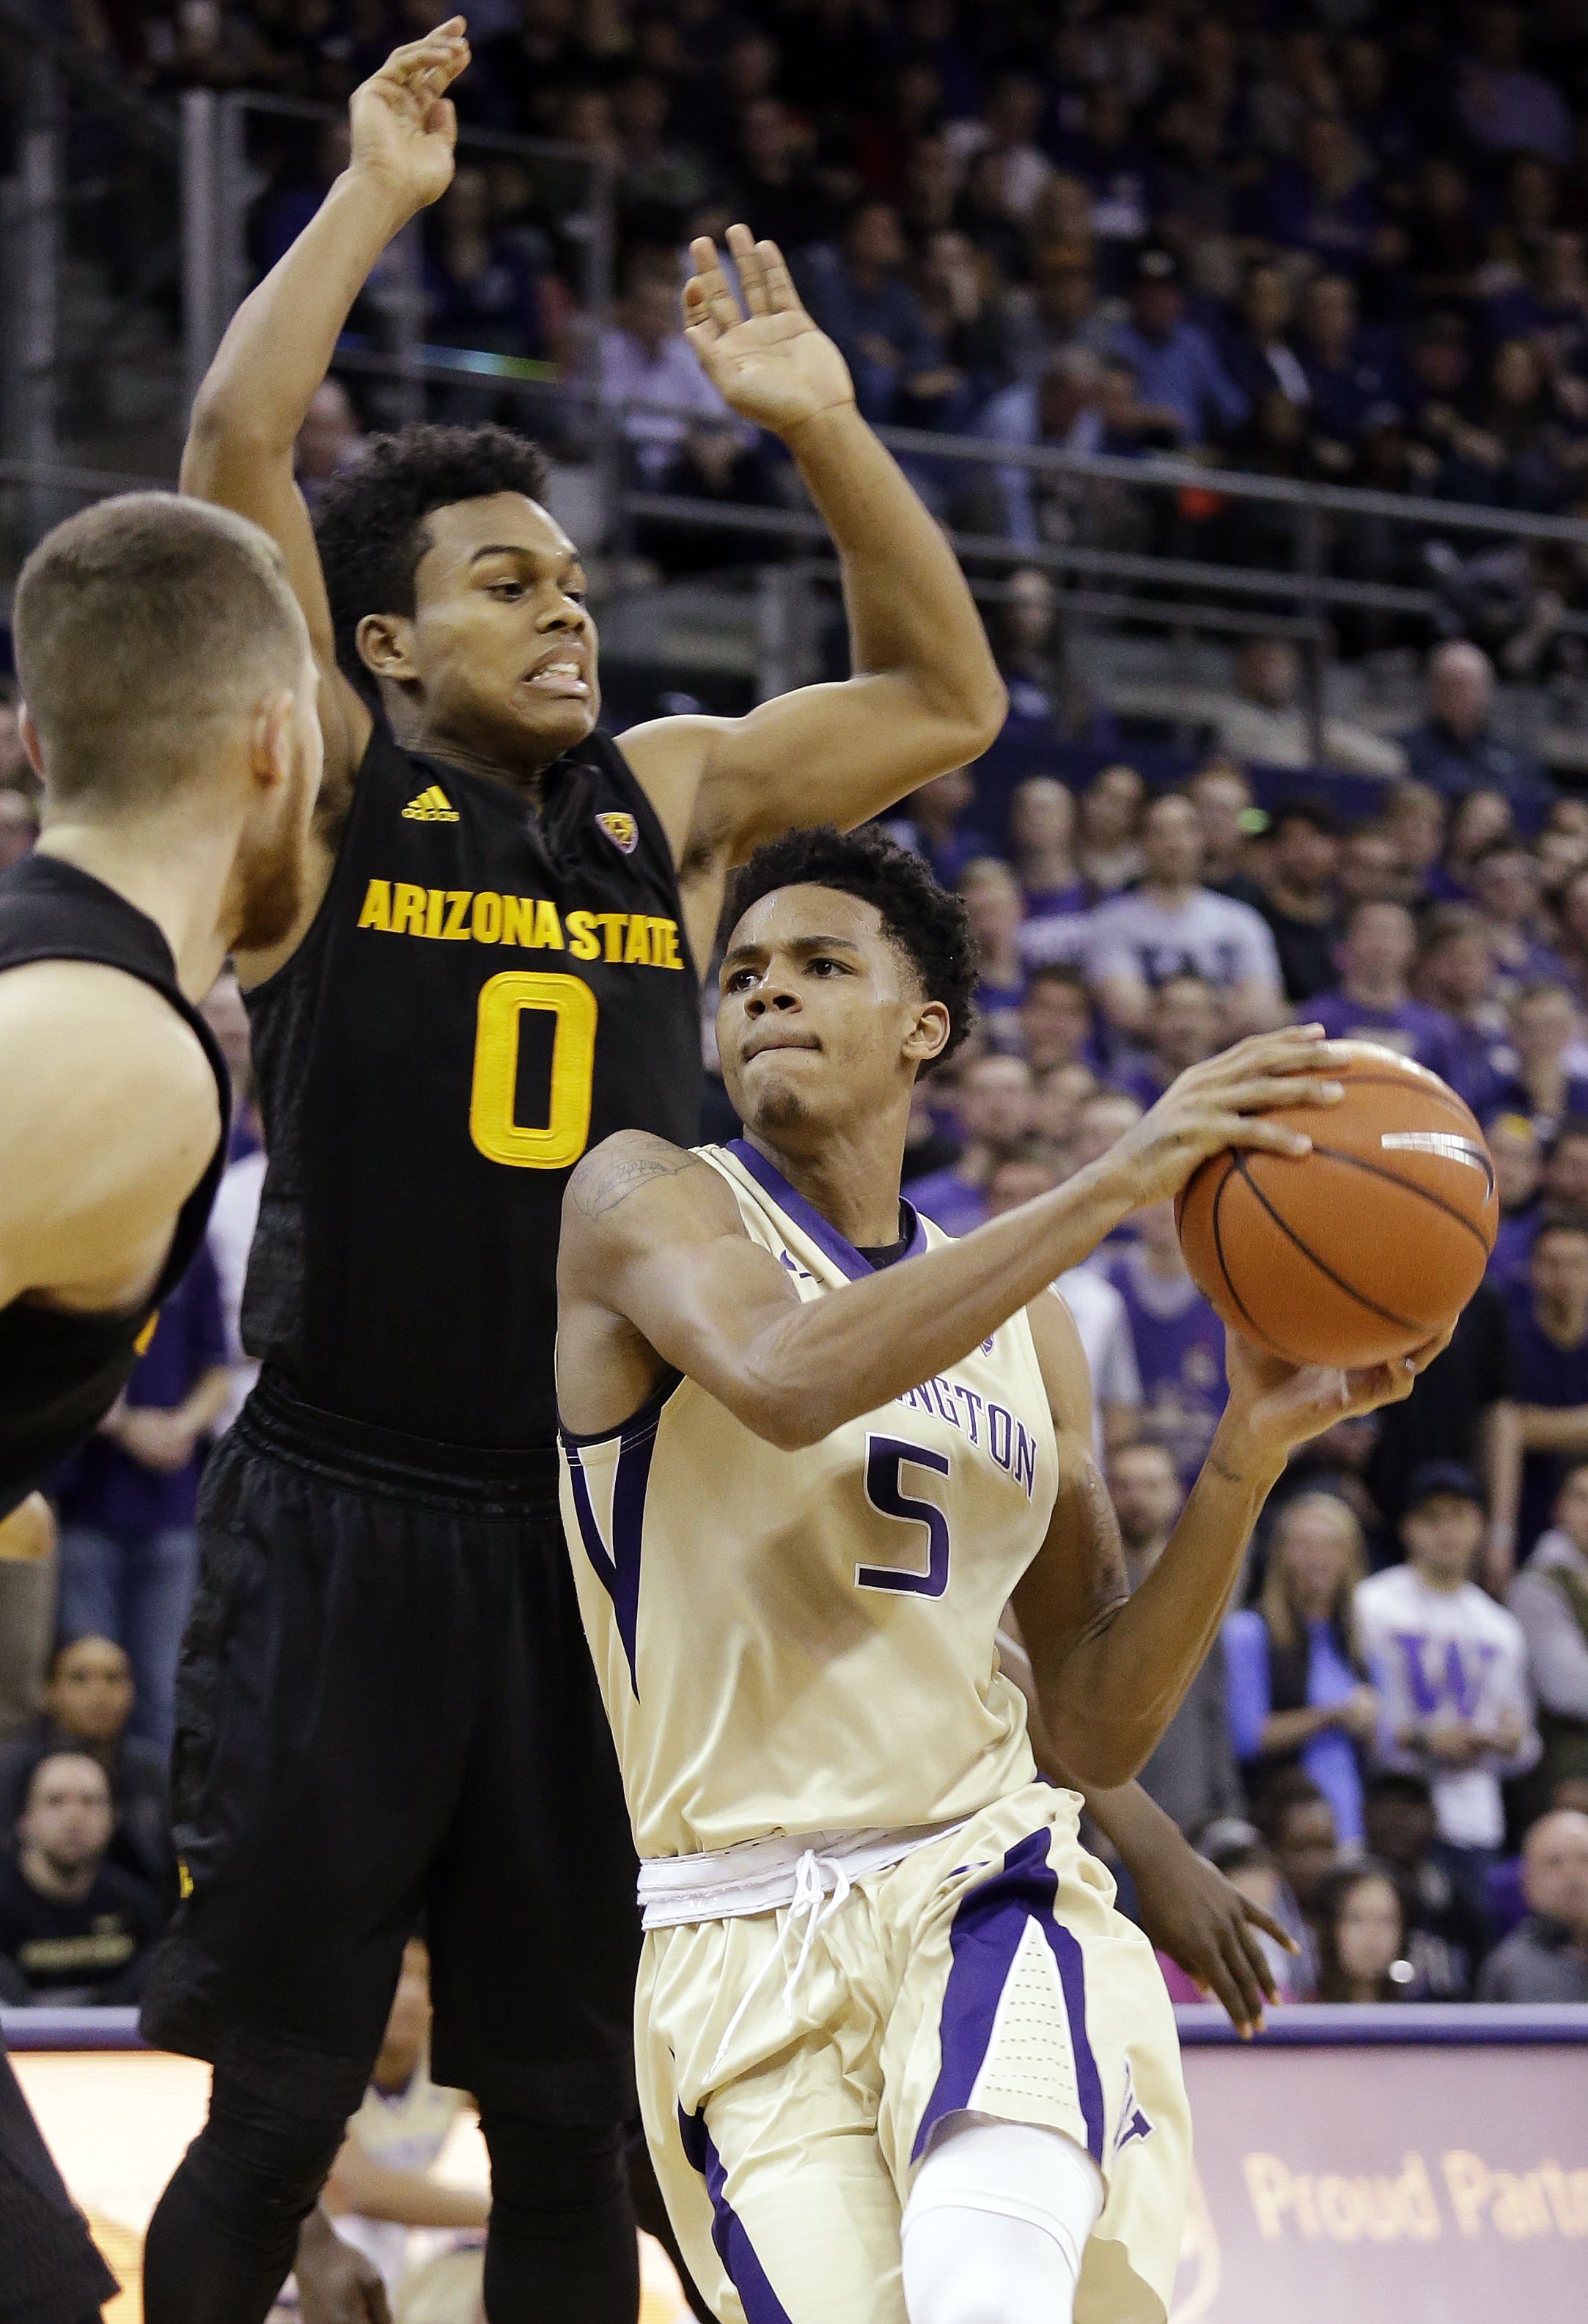 Washington's Dejounte Murray (5) drives past Arizona State's Tra Holder during the second half of an NCAA college basketball game Wednesday, Feb. 3, 2016, in Seattle. (AP Photo/Elaine Thompson)